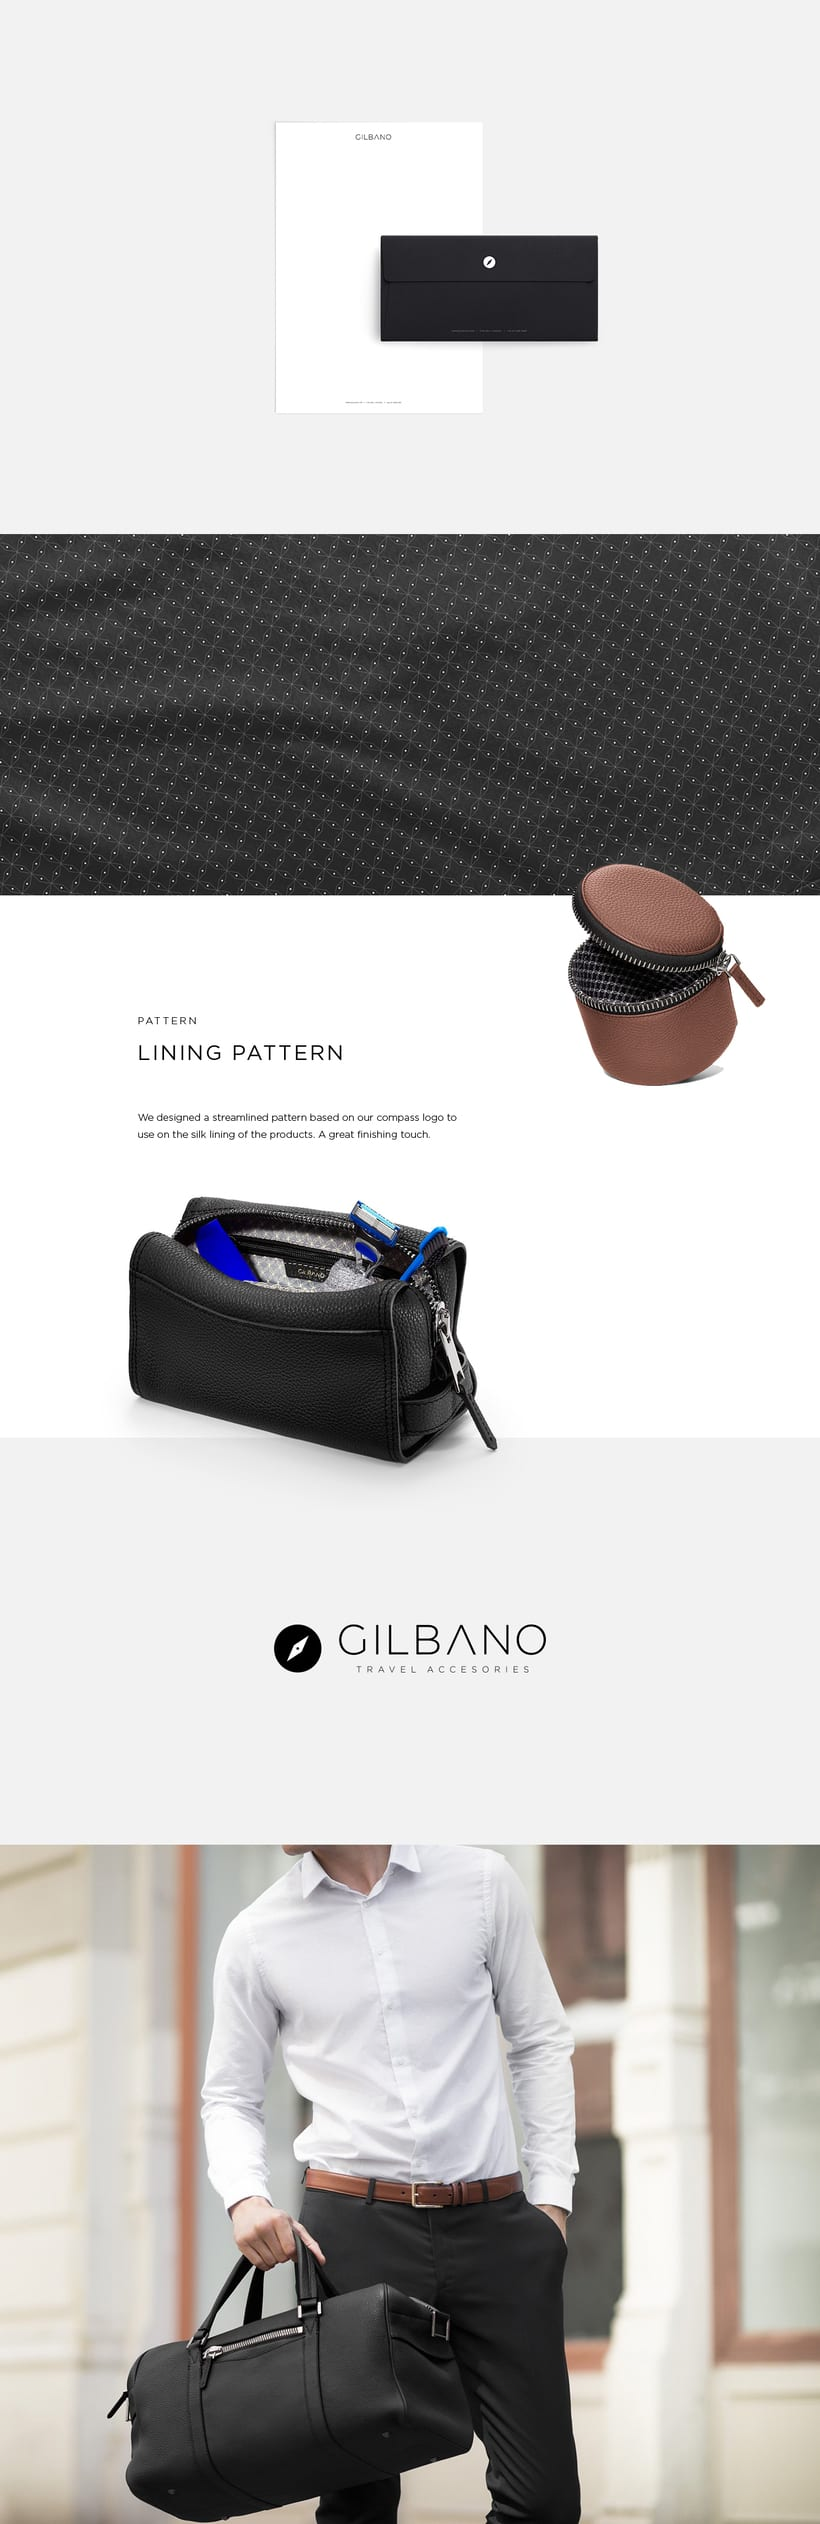 GILBANO - Fashion Branding 3